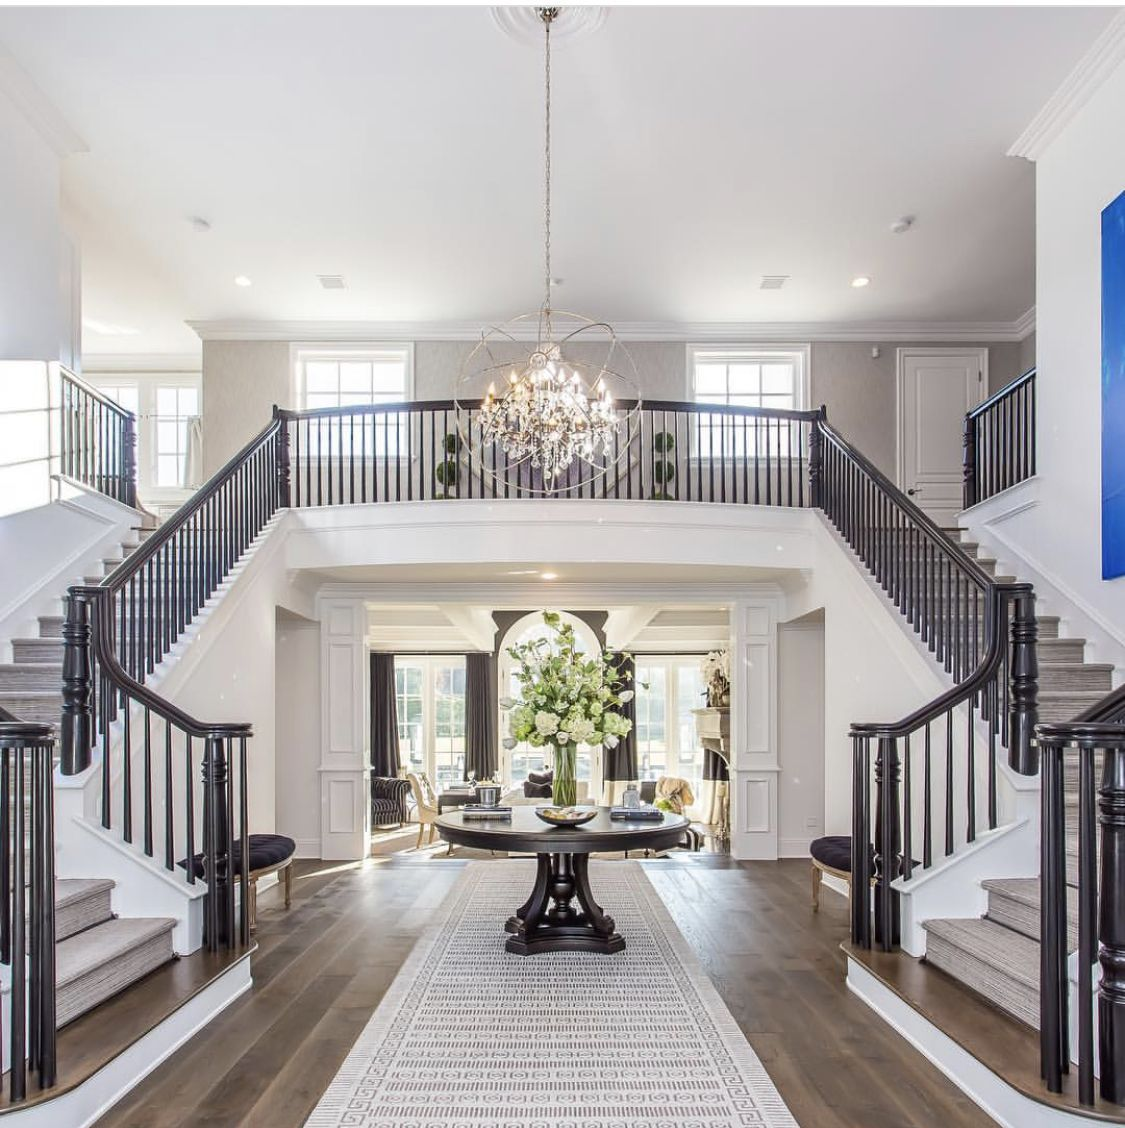 Welcoming Grand Entry In 2020 Dream Home Design Dream House Interior House Design